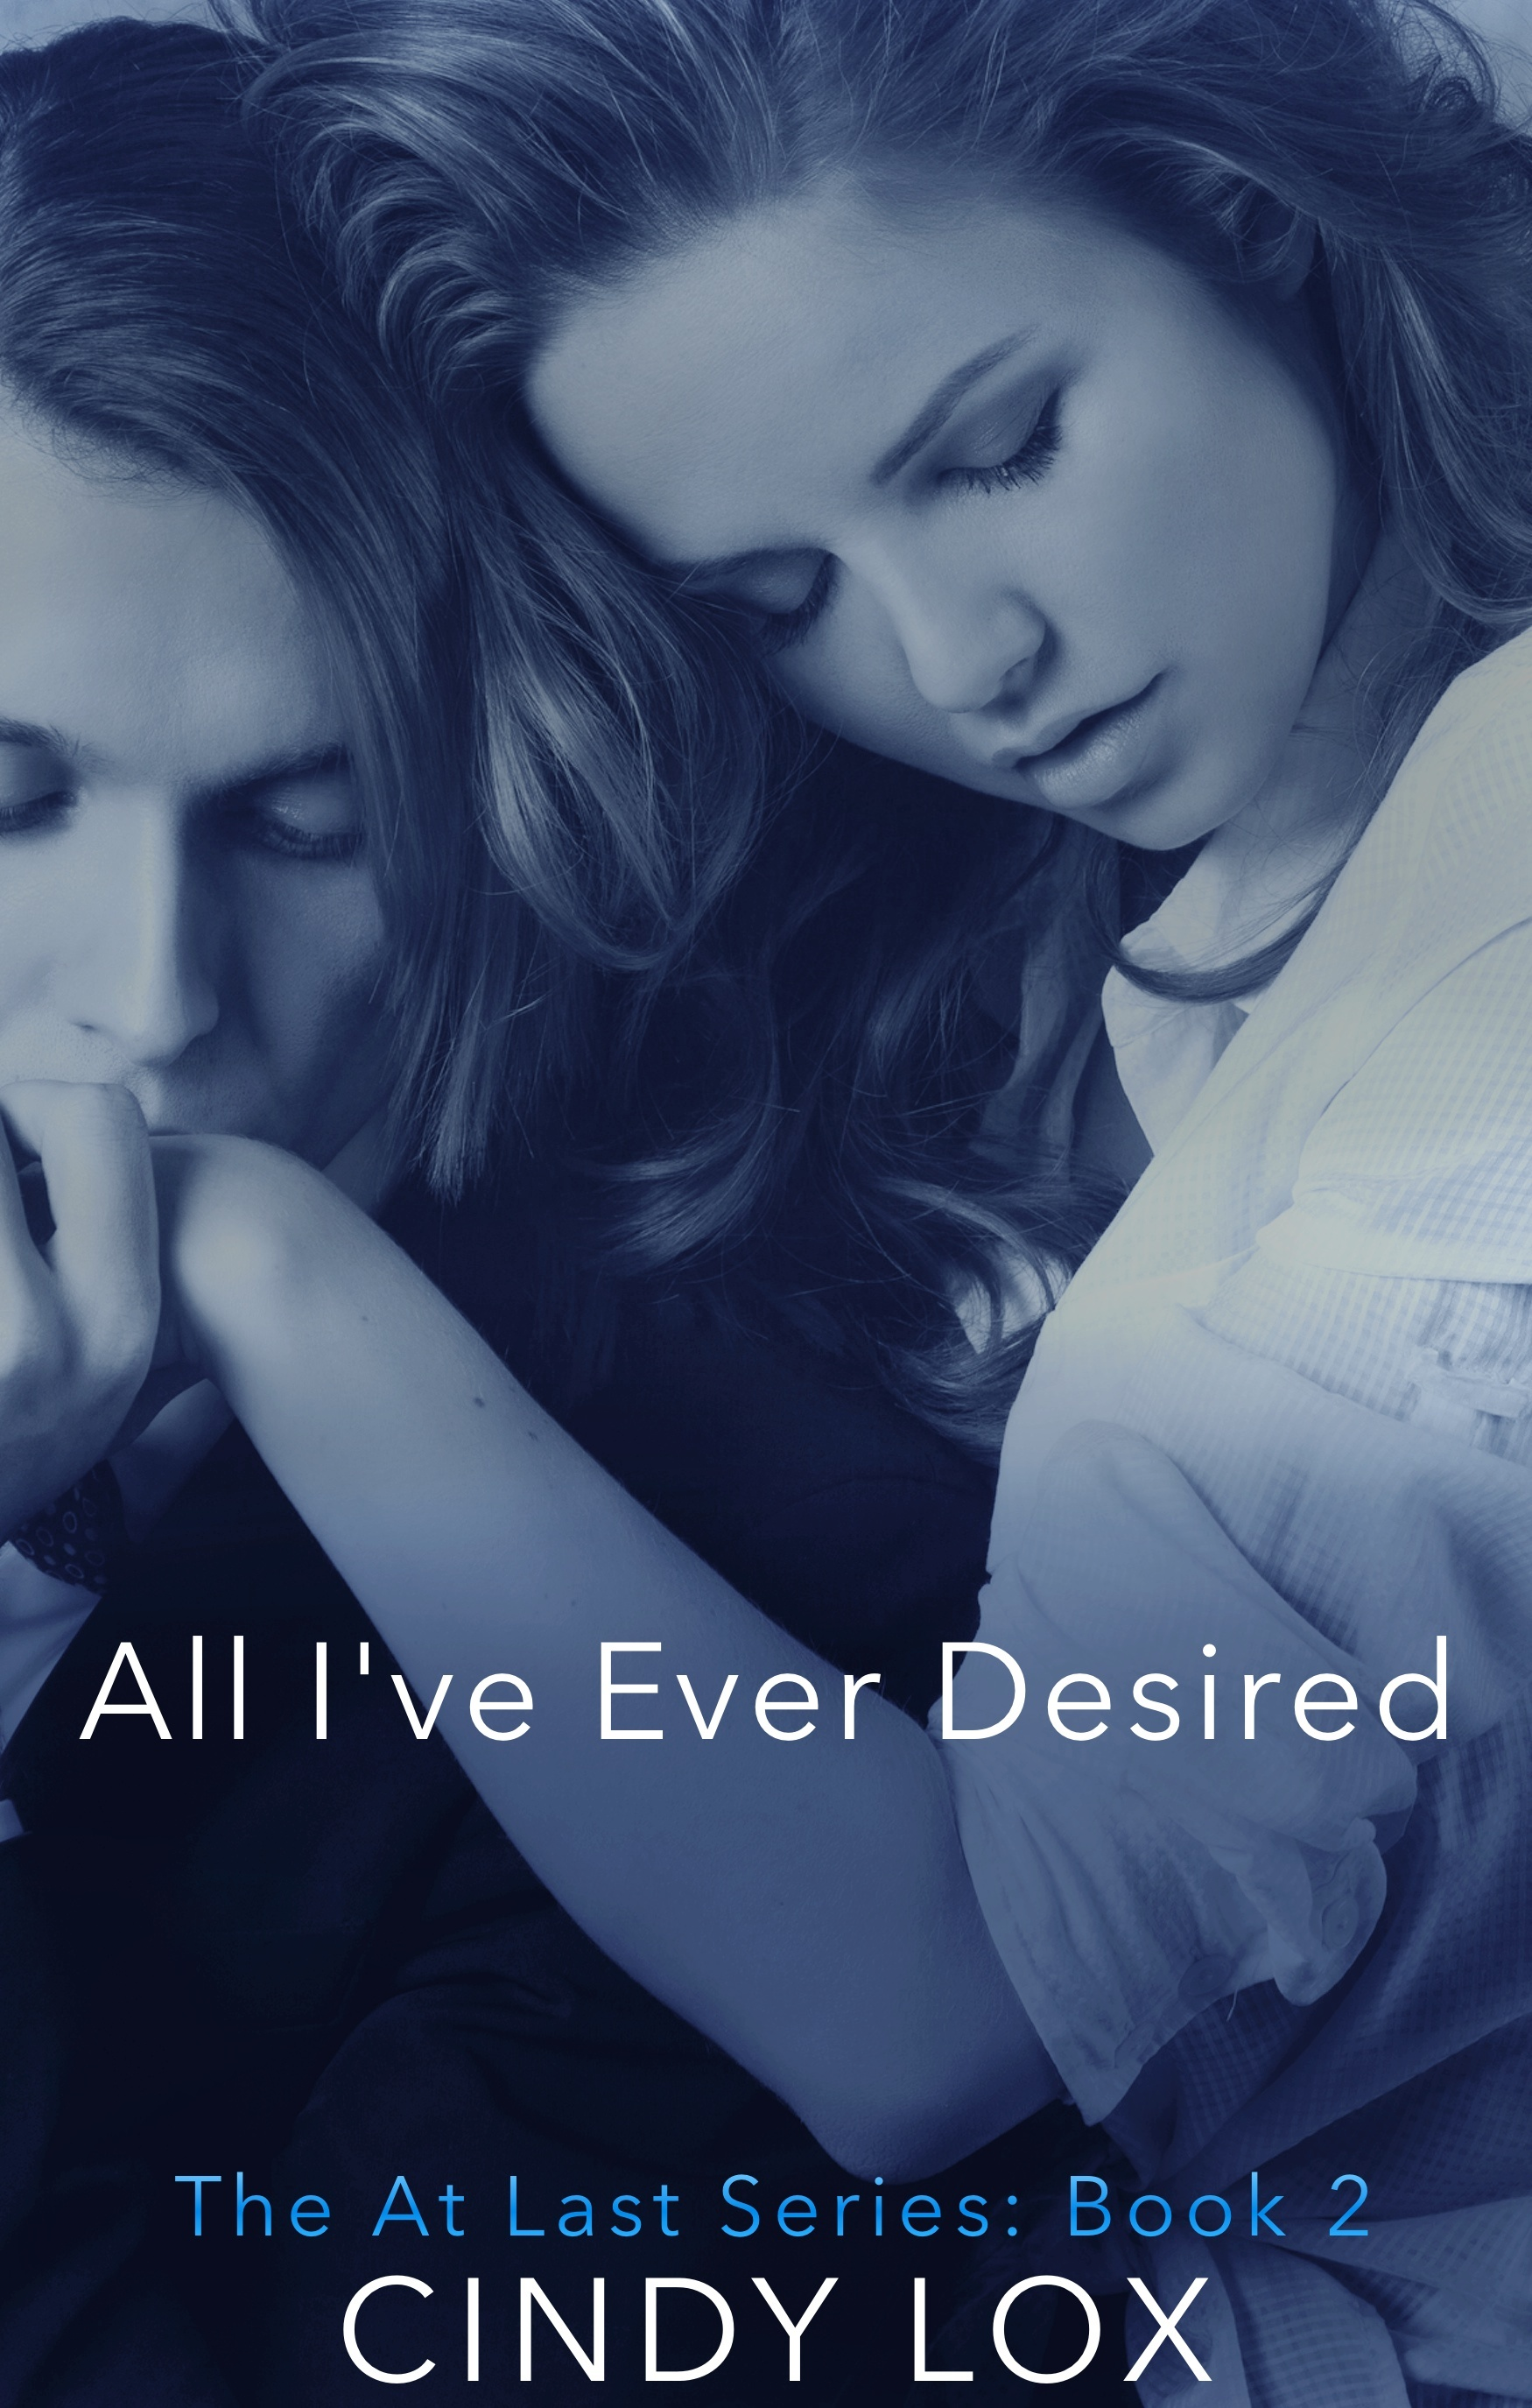 All Ive Ever Desired (The At Last Series: Book 2) Cindy Lox